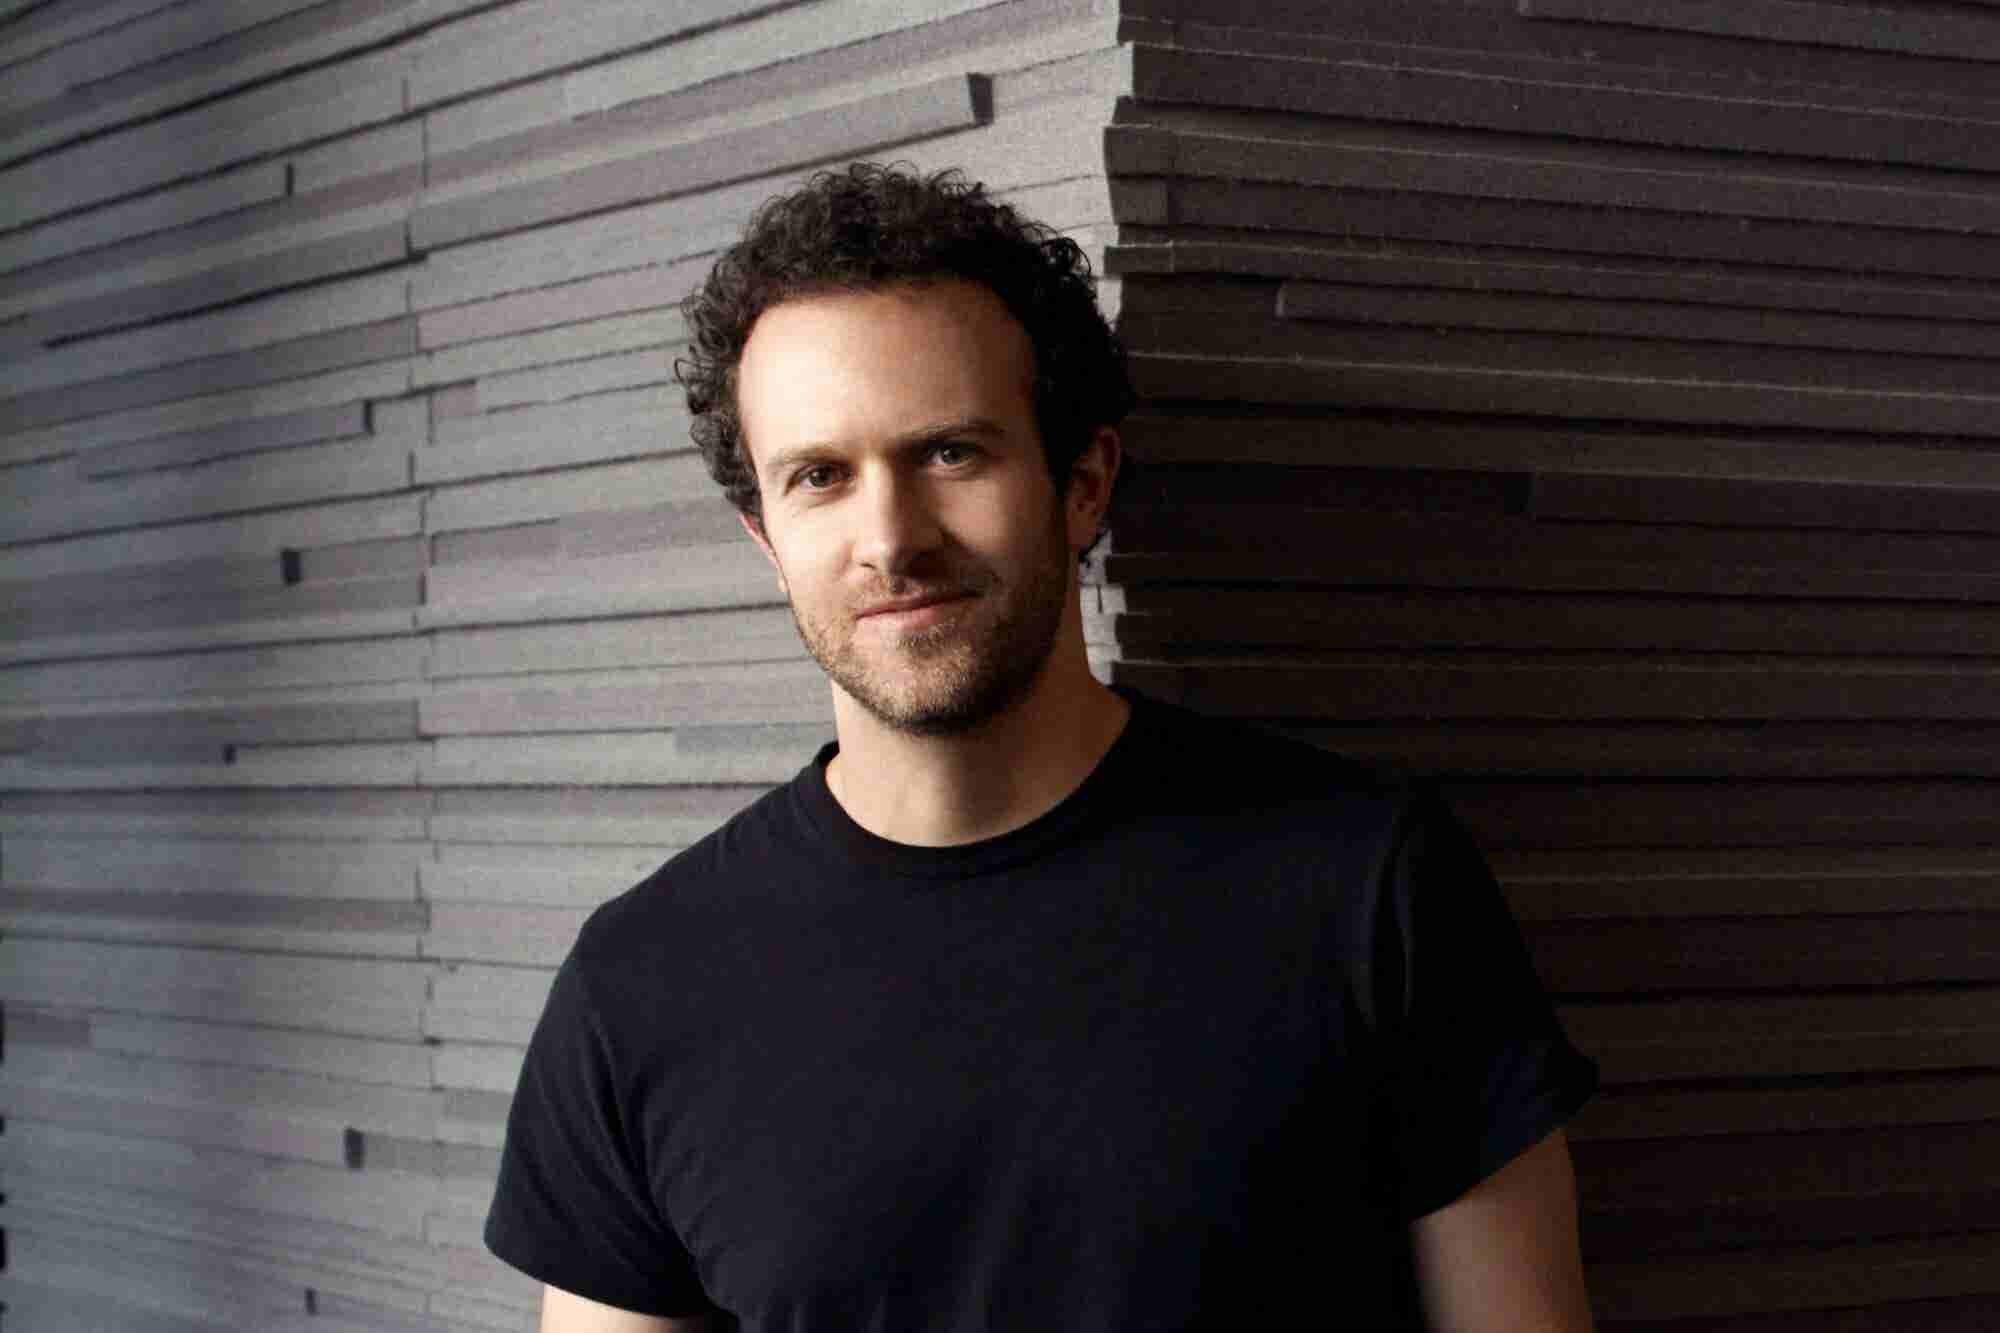 Basecamp Co-Founder and CEO Jason Fried Explains How to Make Work Less...